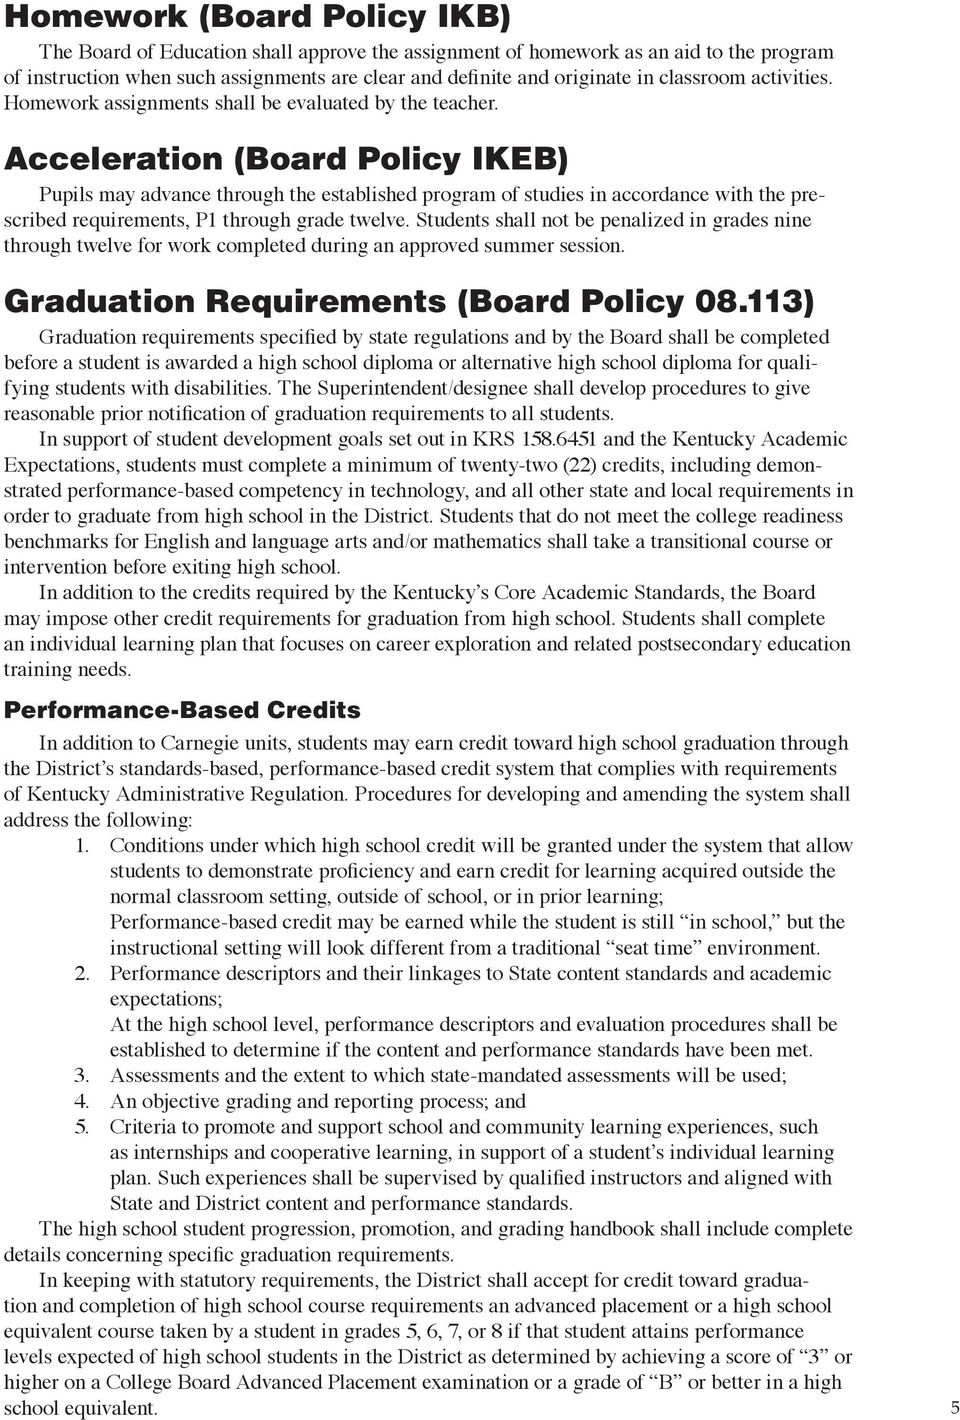 Acceleration (Board Policy IKEB) Pupils may advance through the established program of studies in accordance with the prescribed requirements, P1 through grade twelve.